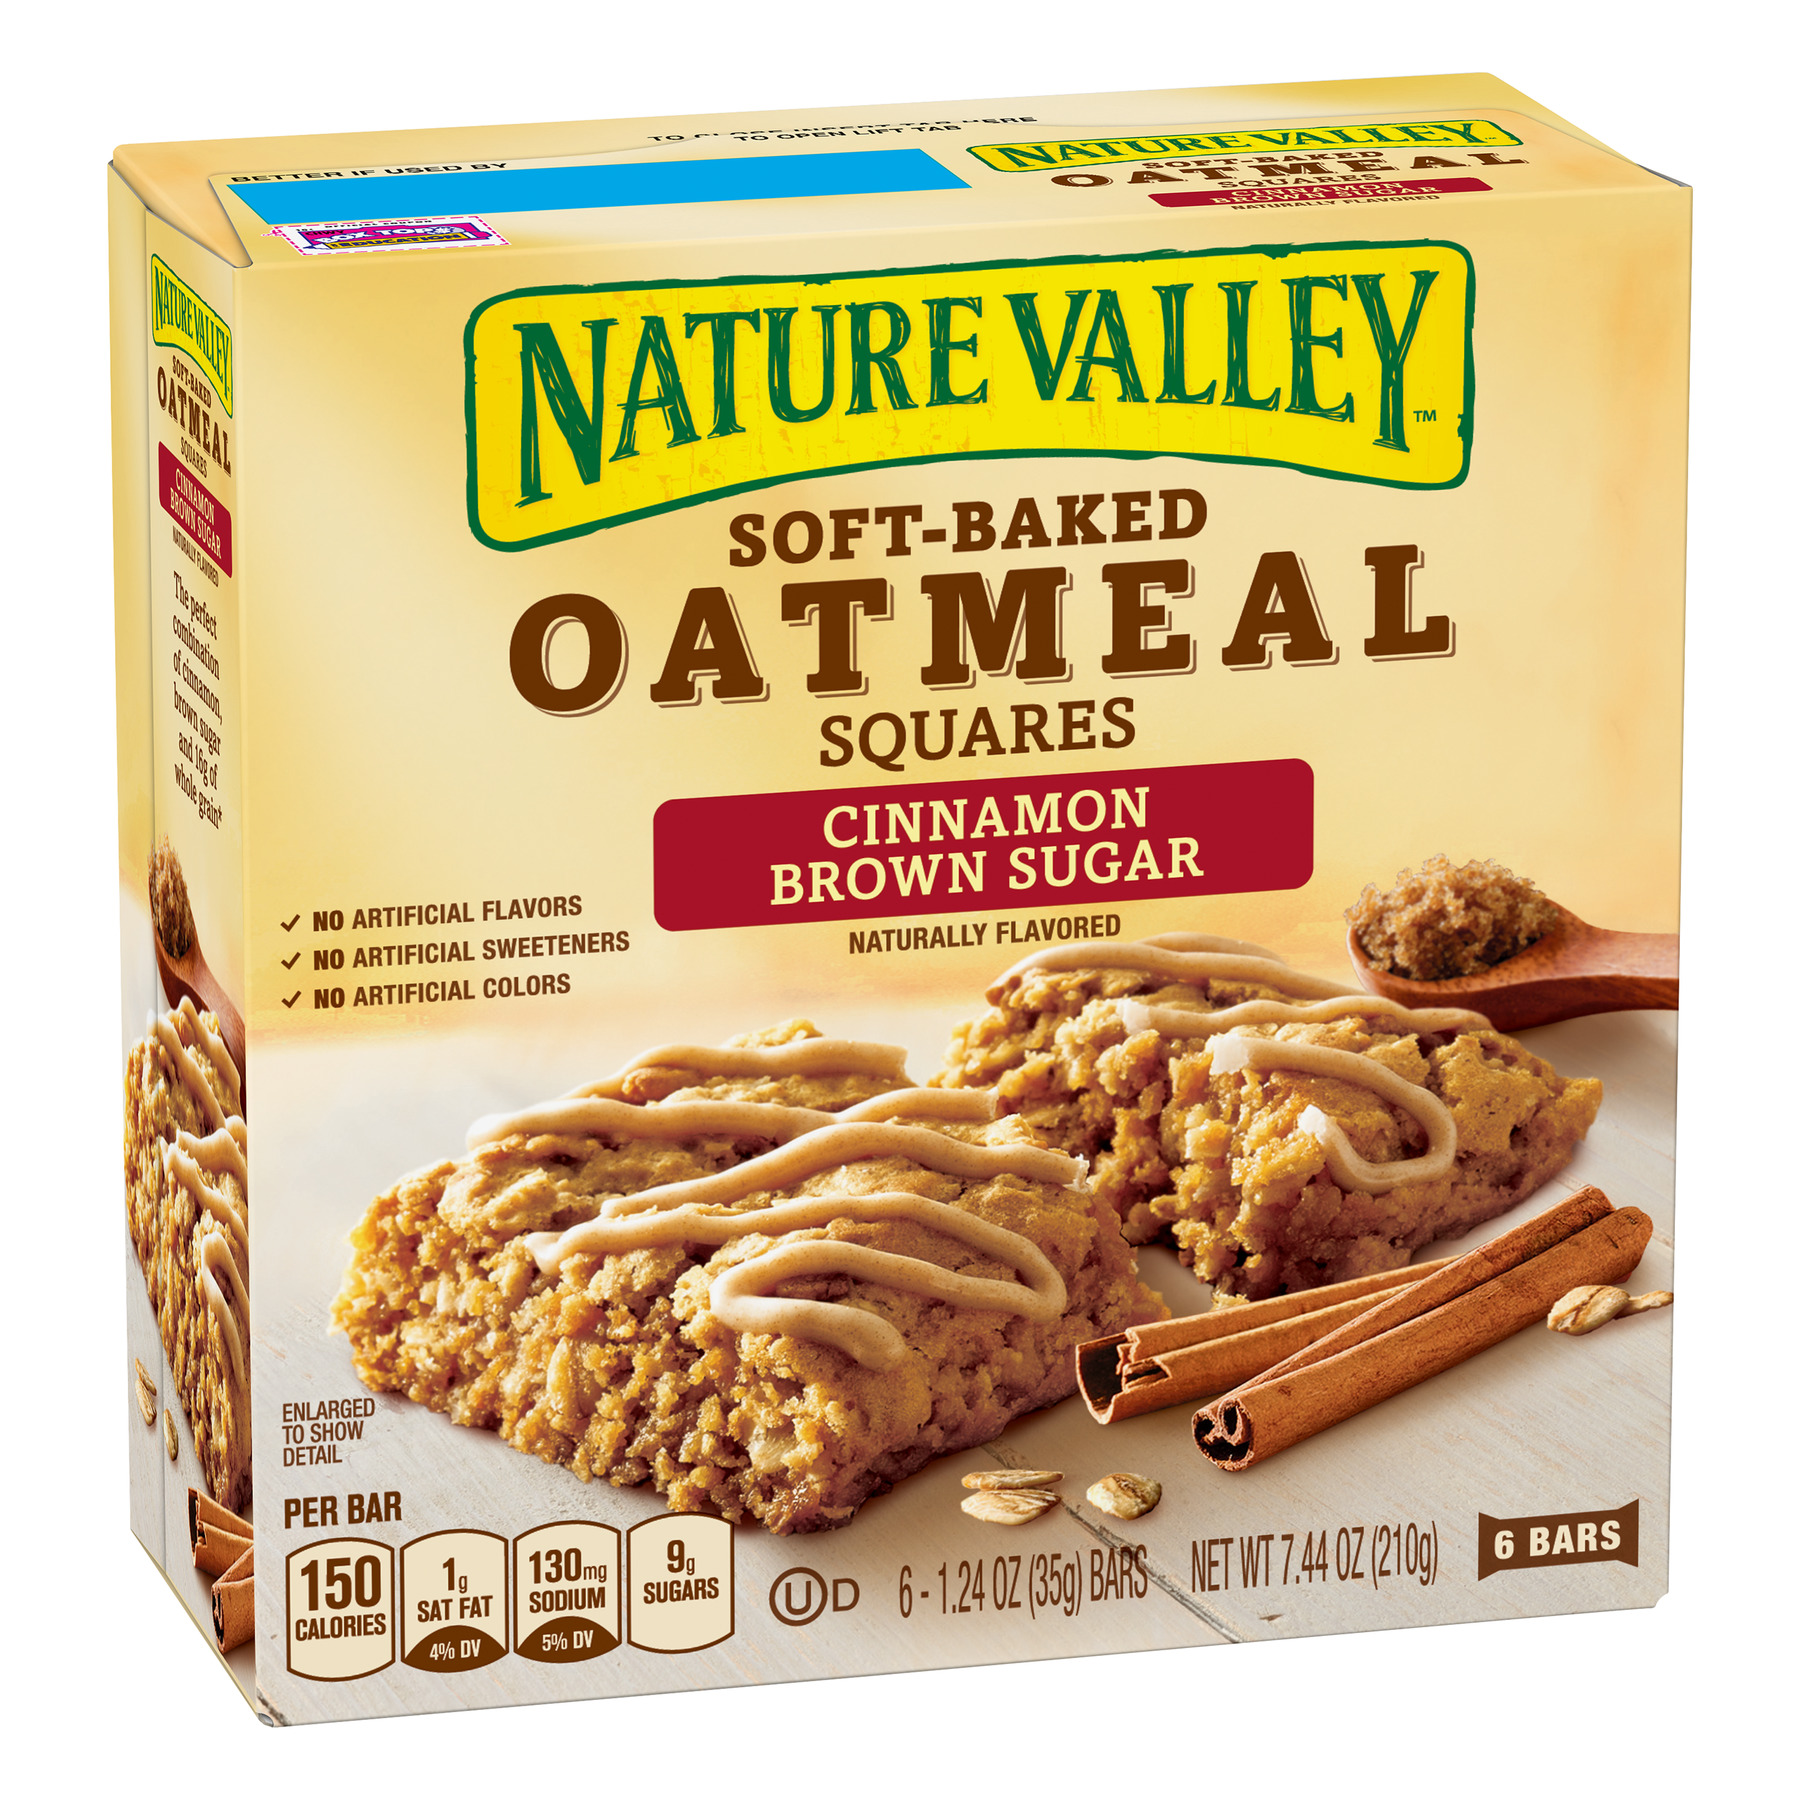 Nature Valley Soft Baked Oatmeal Squares Cinnamon Brown Sugar, 7.44 oz